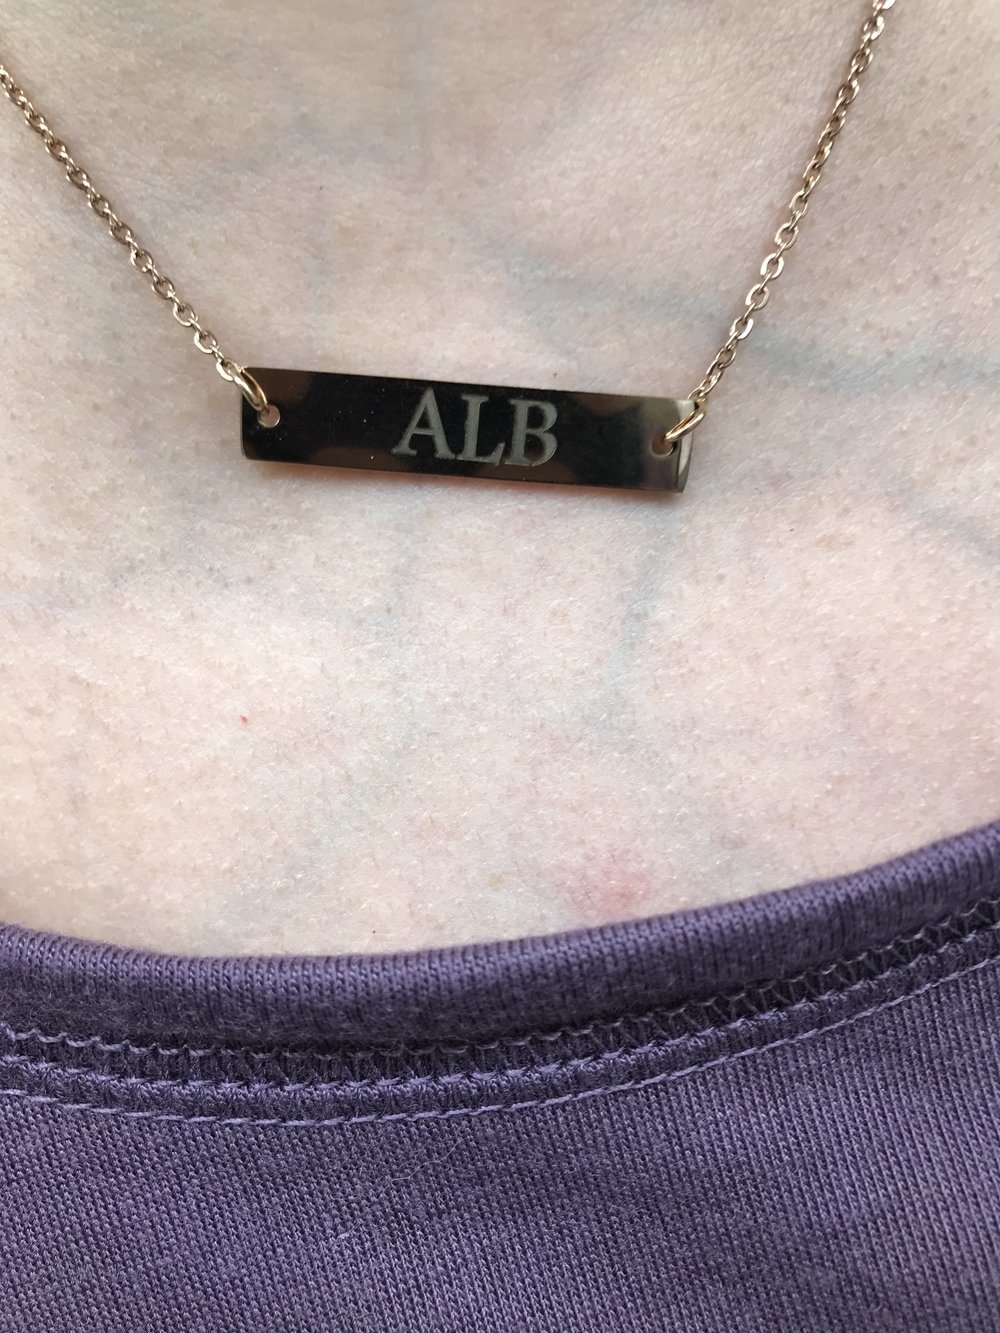 ALB Monogram Necklace